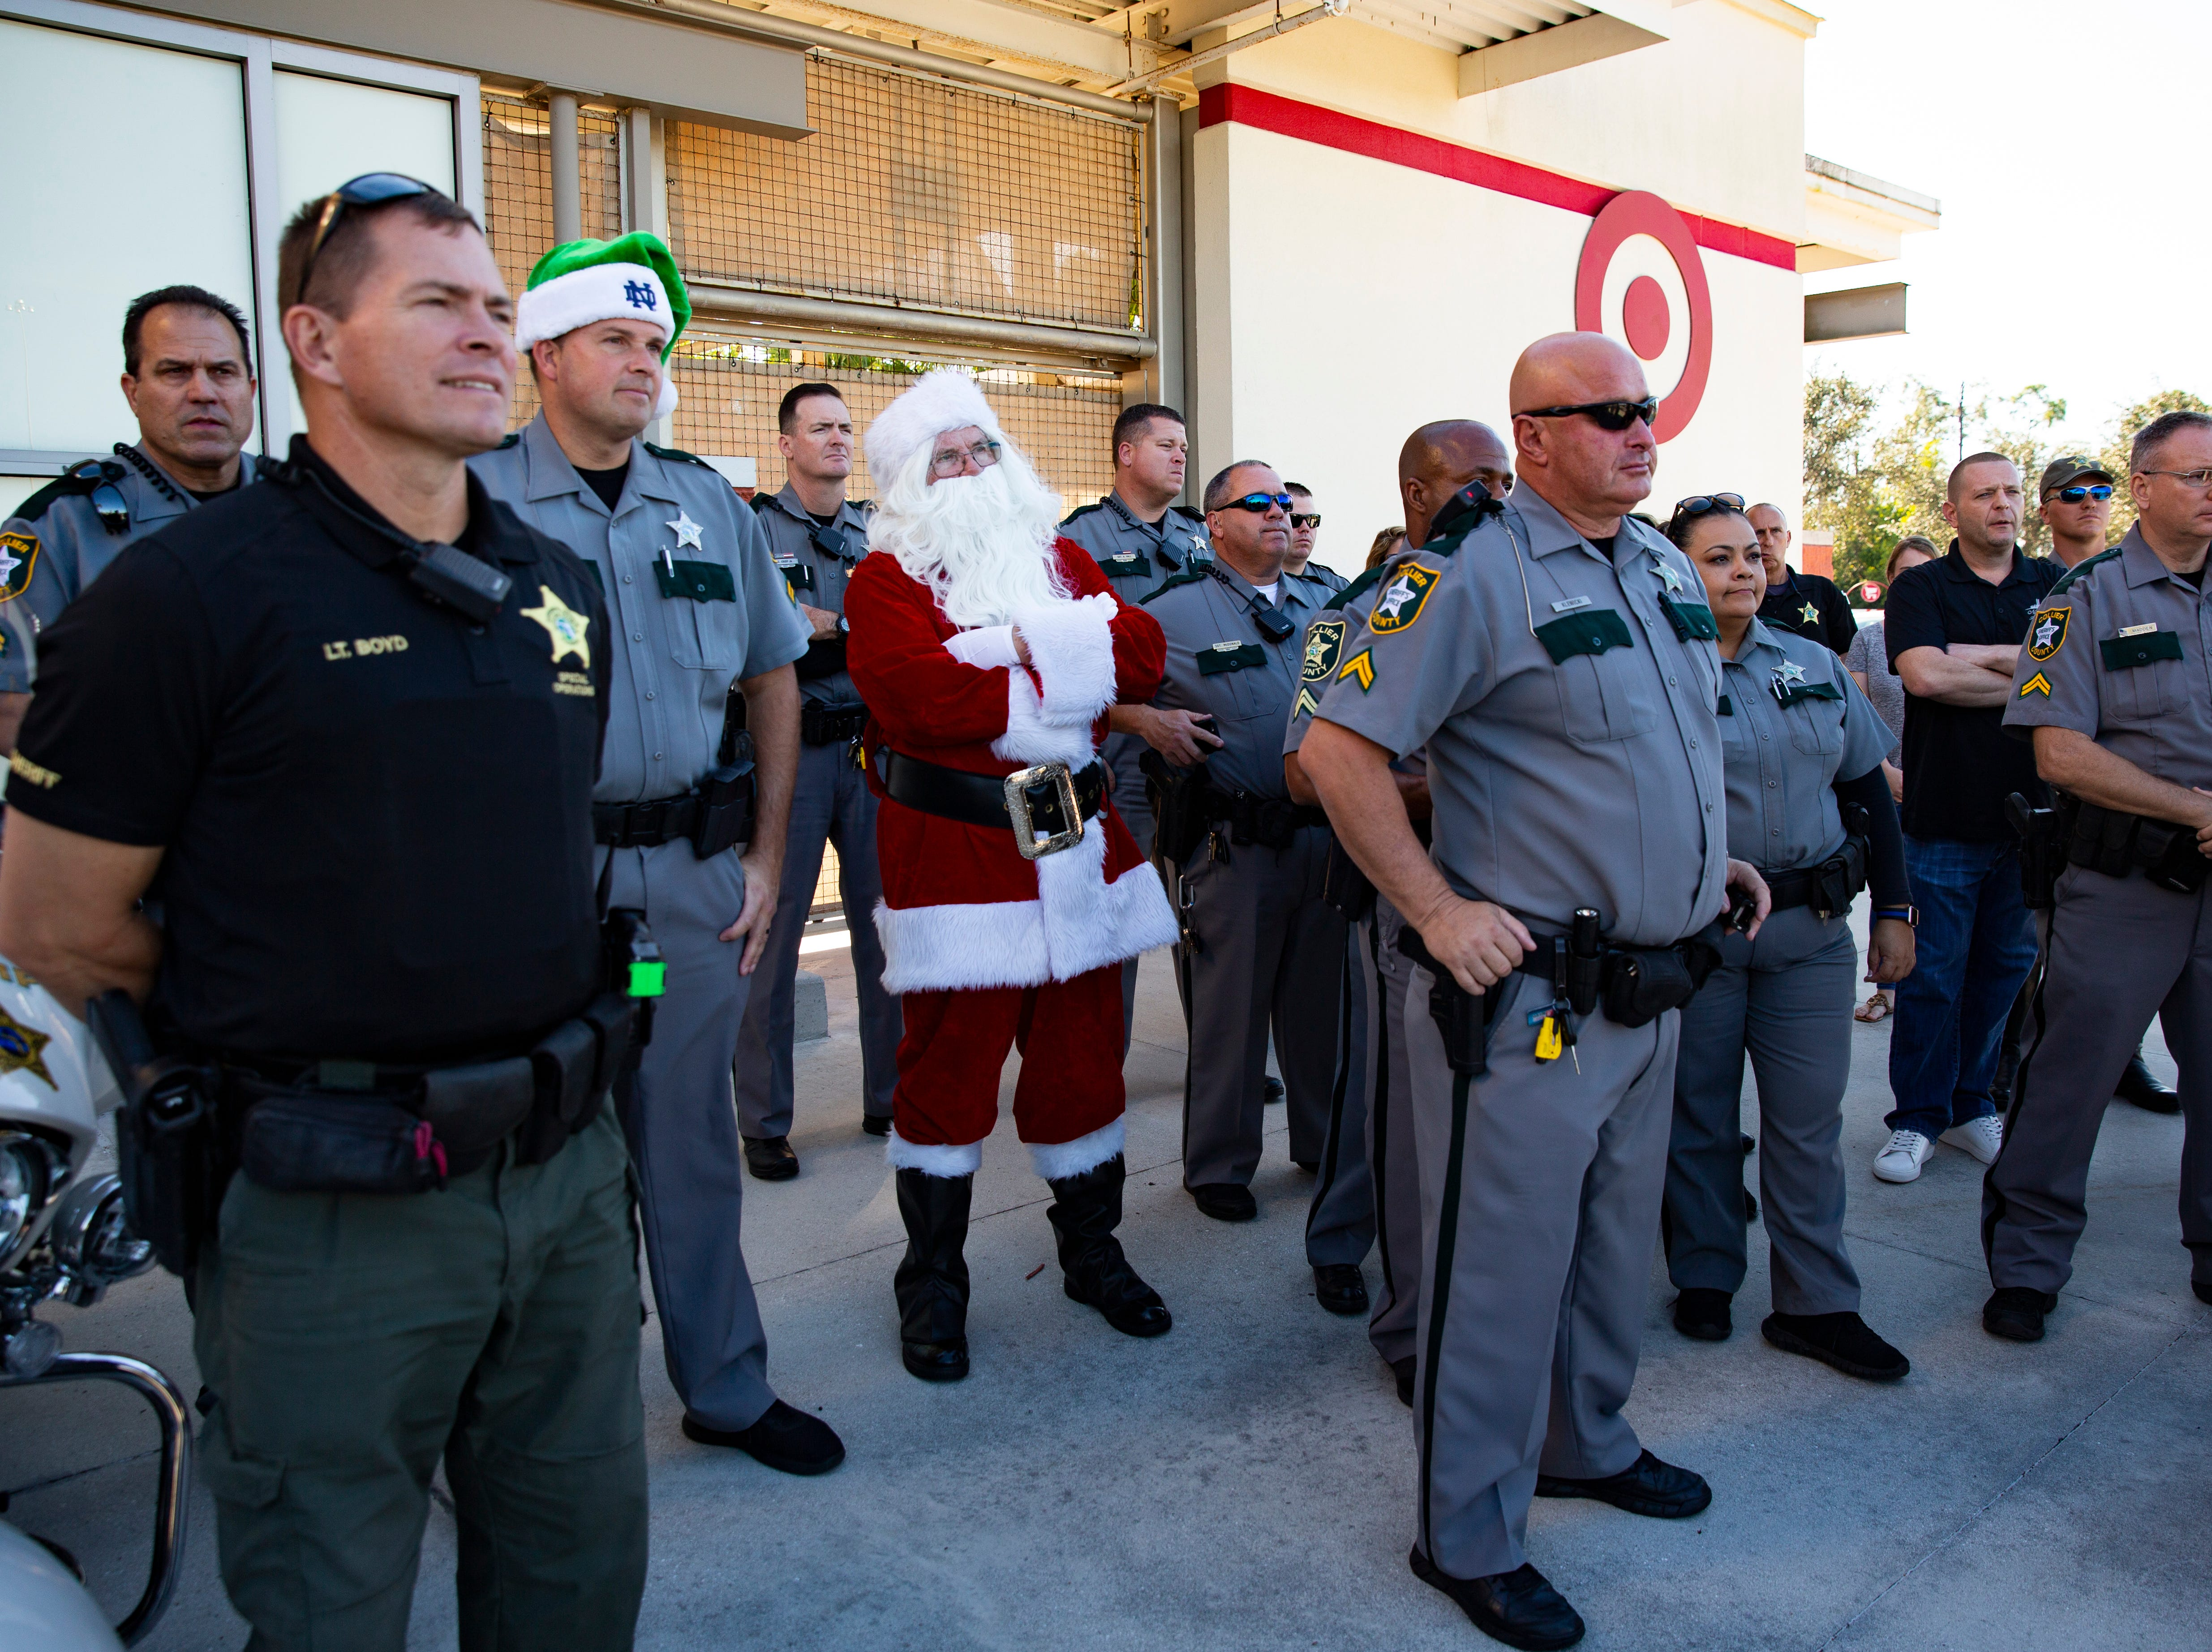 Santa Clause stands among the officers from the Collier County SheriffÕs Office as they wait for the children to arrive during the ÒShop With a SheriffÓ event at Target in North Naples on Tuesday, December 18, 2018. The Jewish Federation of Greater Naples partnered with the Collier County SheriffÕs Office for the fourth year in a row to help 78 children and their families during the holiday season.